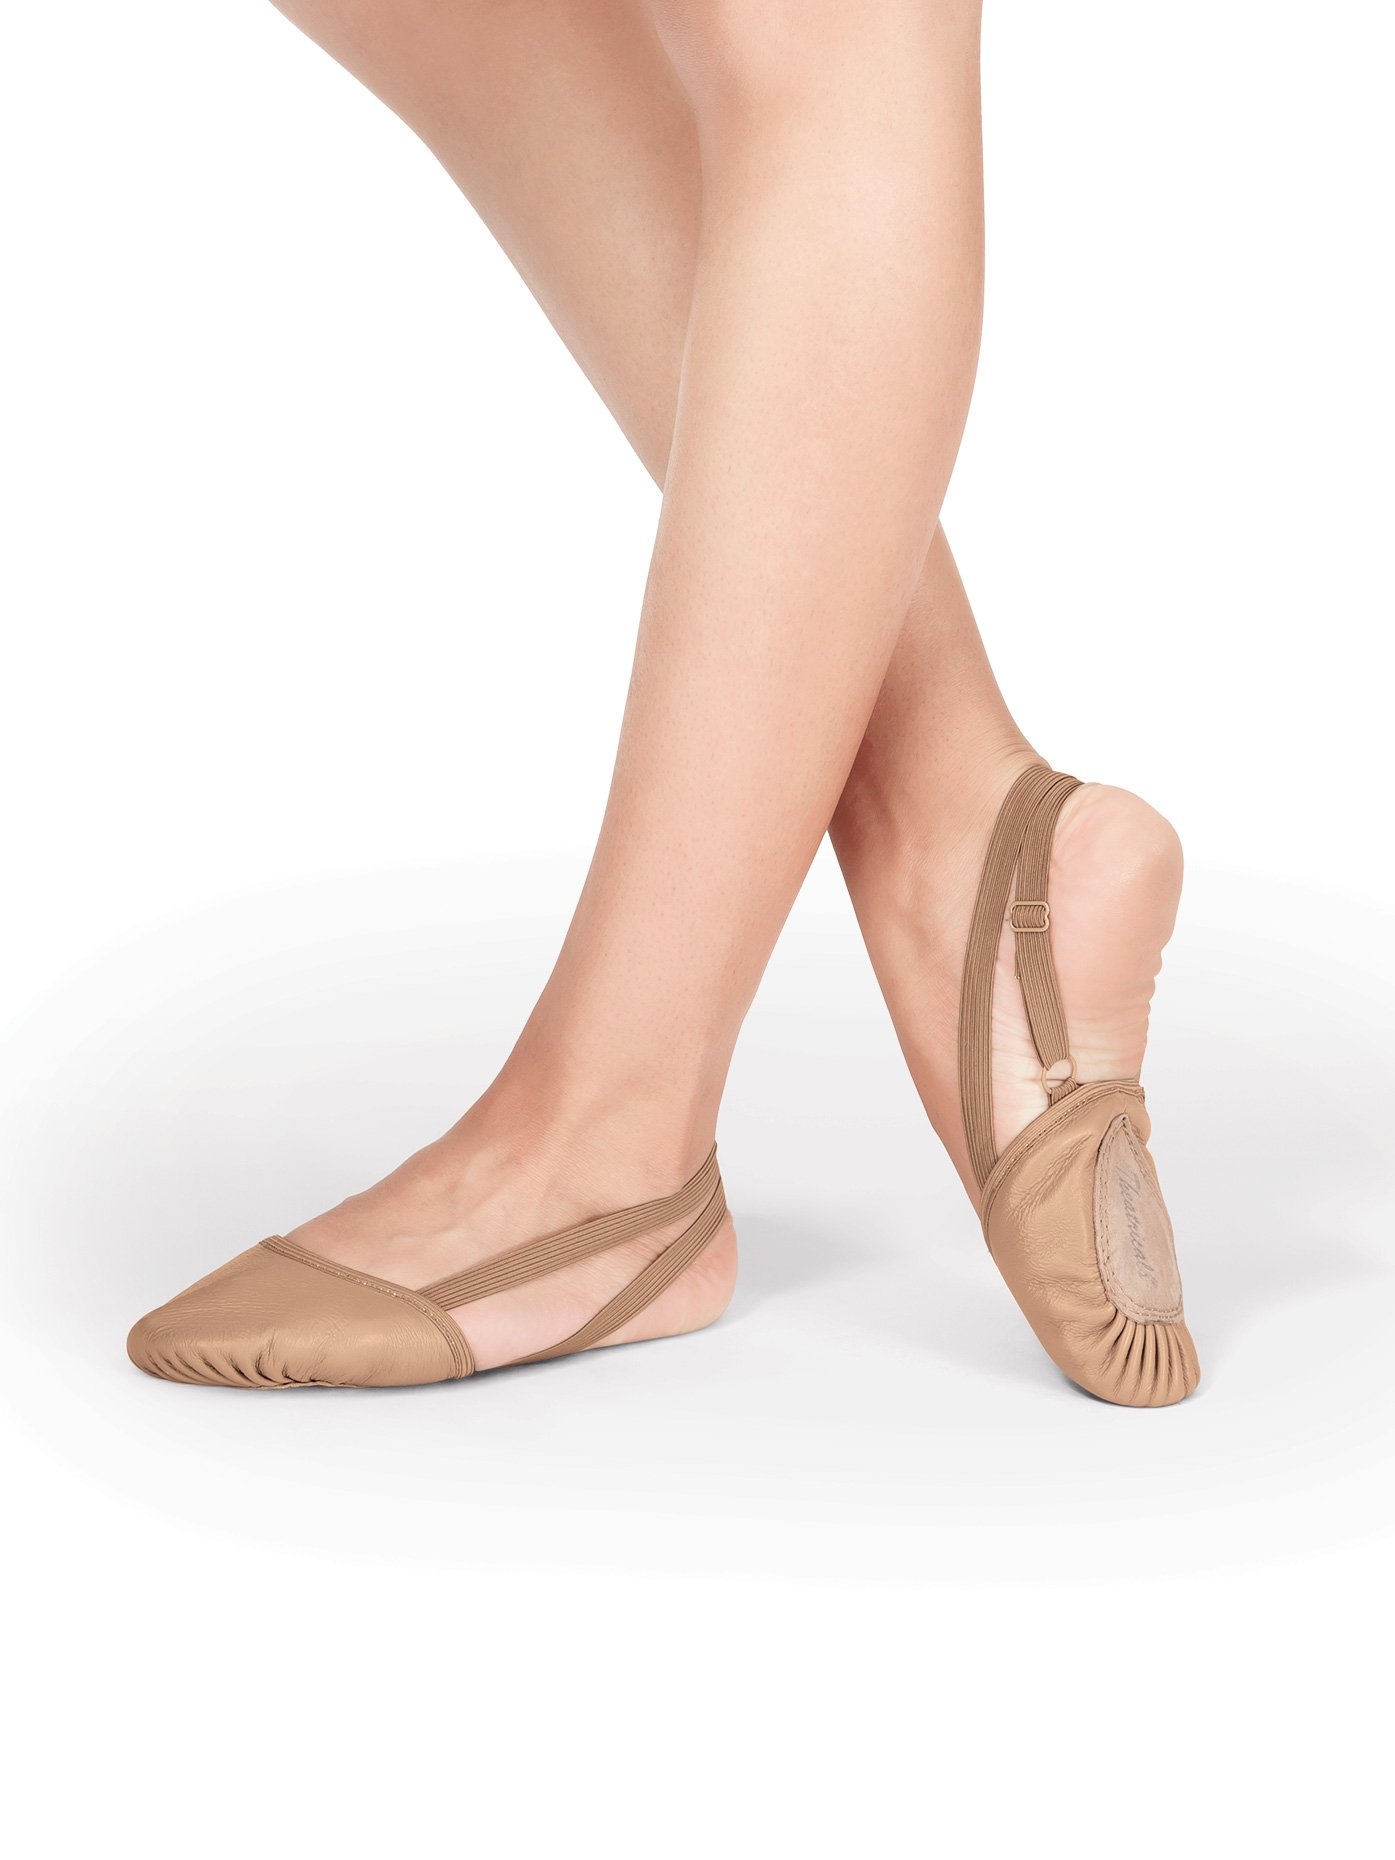 Leather Dance Half Sole,T8970TANS,Tan,Small